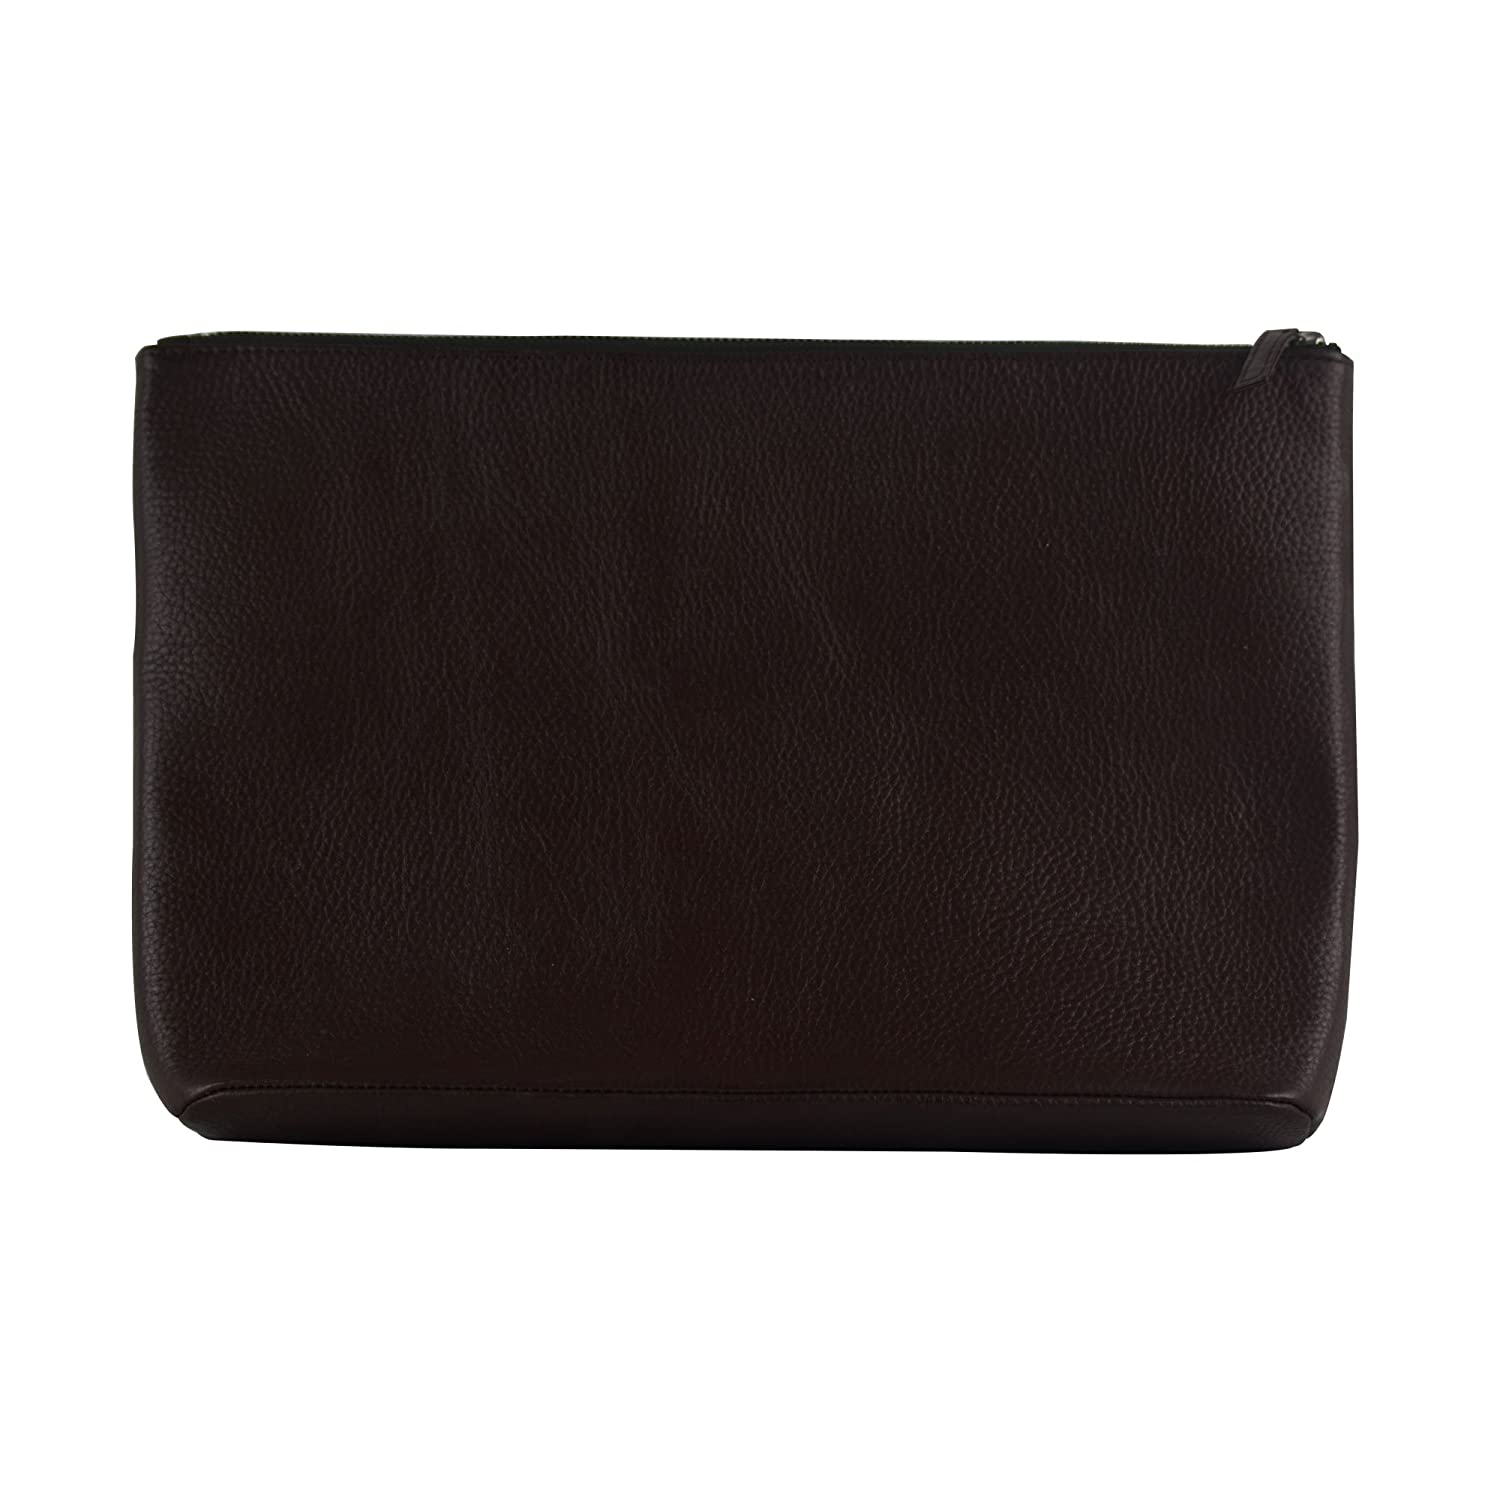 Rembrandt Home Leather Travel Square Packing Pouch, Portable Storage Case Organiser, Brown   B0722YH2R2